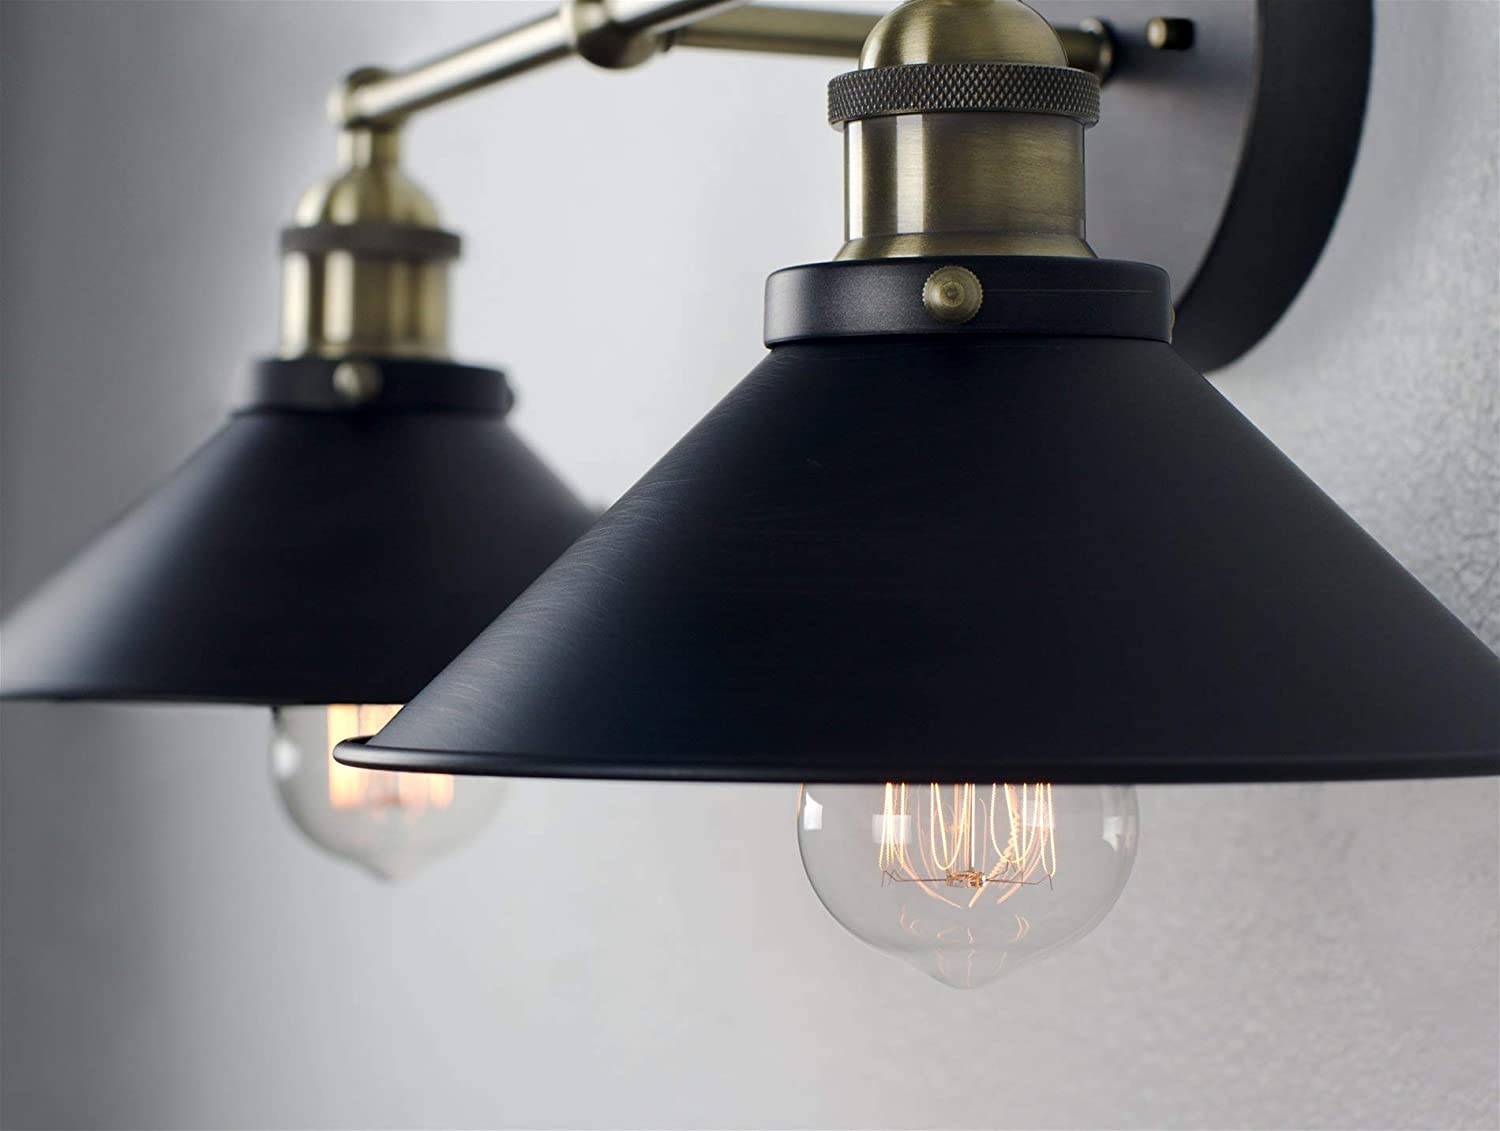 Kira Home Indie 21 Mid-Century Industrial Edison 2-Light Bathroom//Vanity Wall Sconce Antique Brass Accents Brushed Matte Black Finish